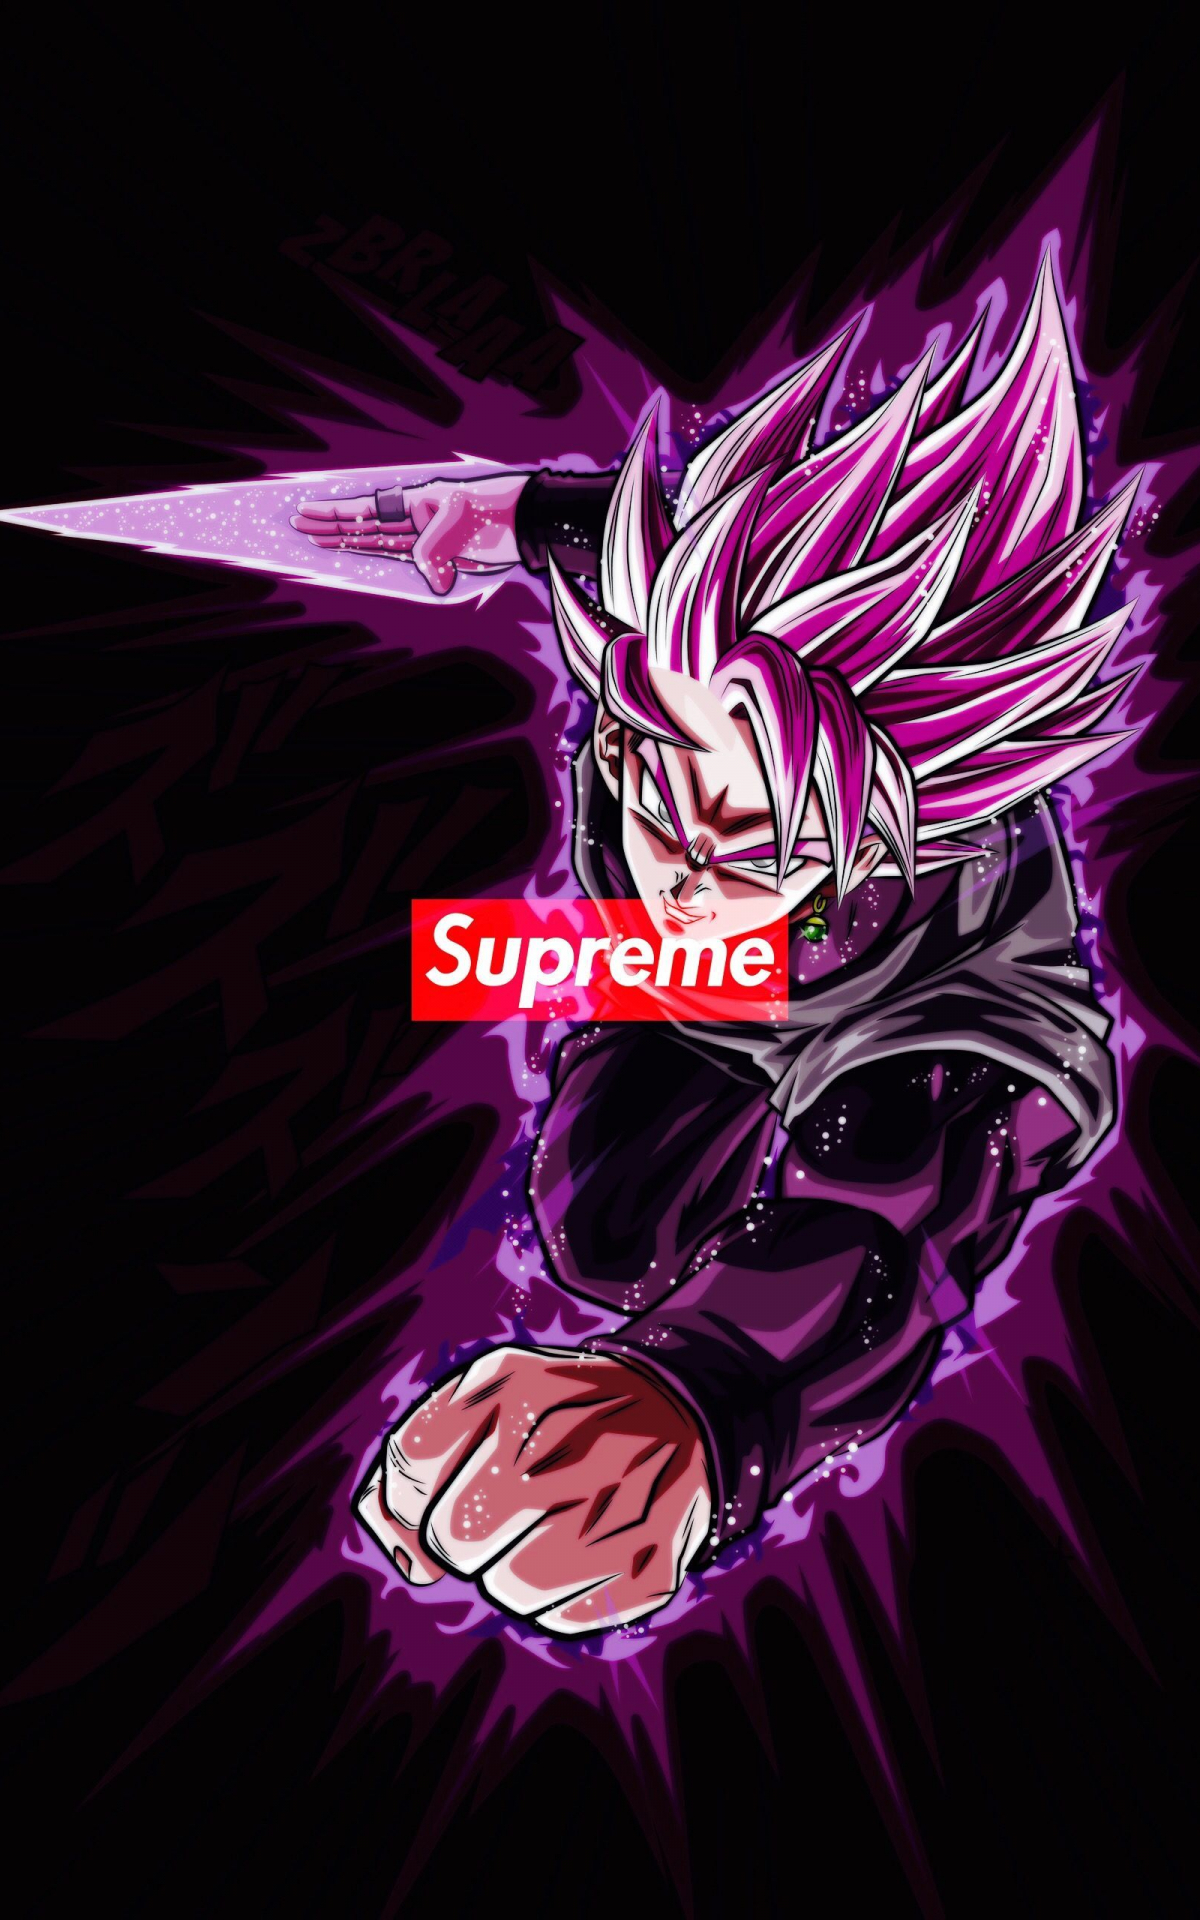 Free Download Cool Supreme Wallpapers Top Cool Supreme Backgrounds